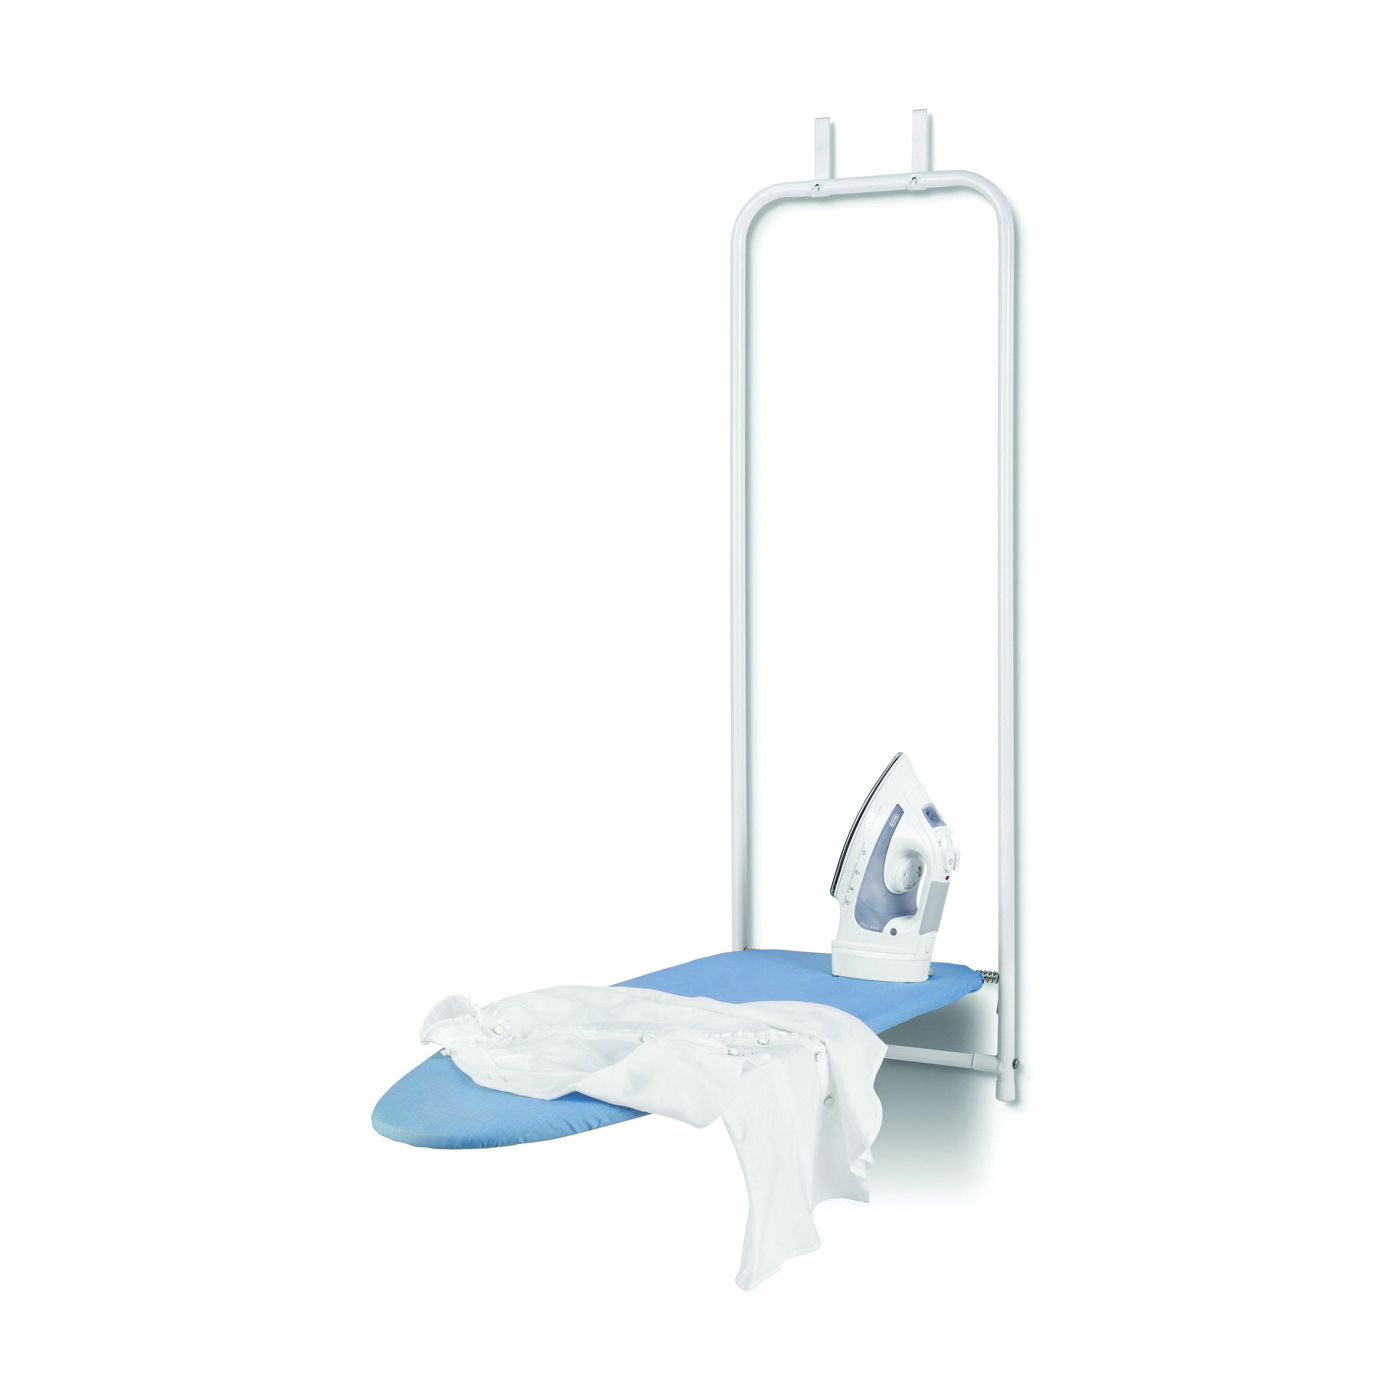 Picture of Honey-Can-Do BRD-01350 Ironing Board, 42 in L x 14 in W Board, Blue/White Board